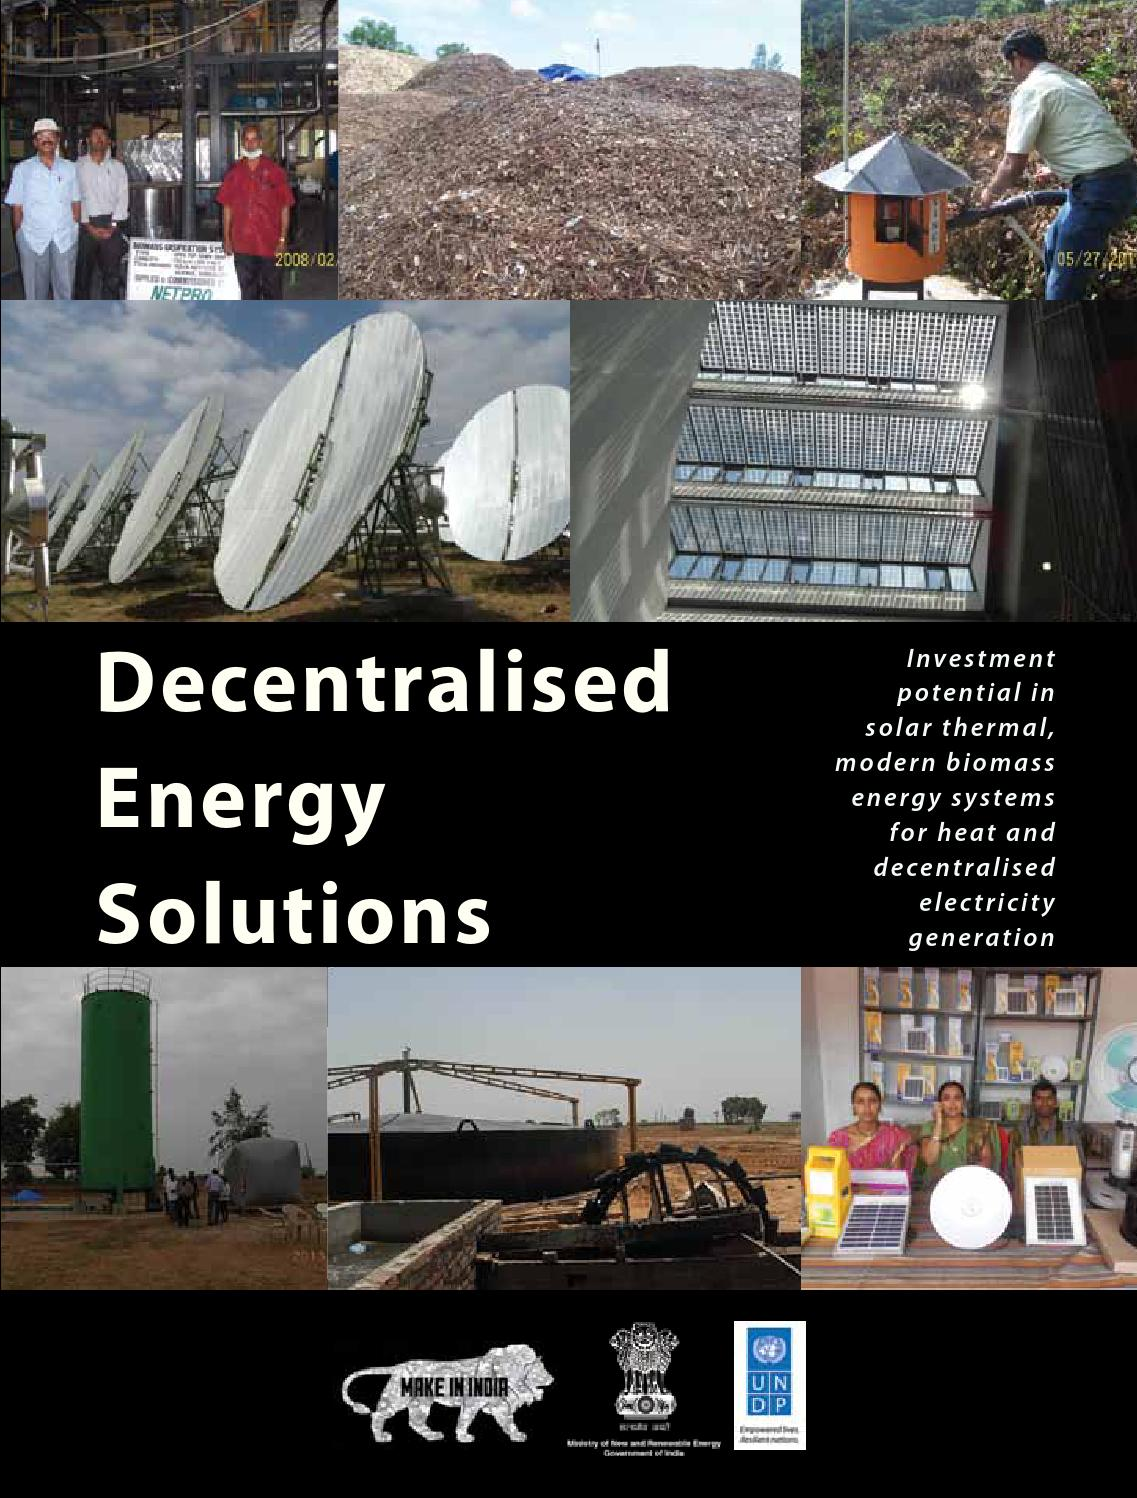 Decentralised Energy Solutions Investment Potential In